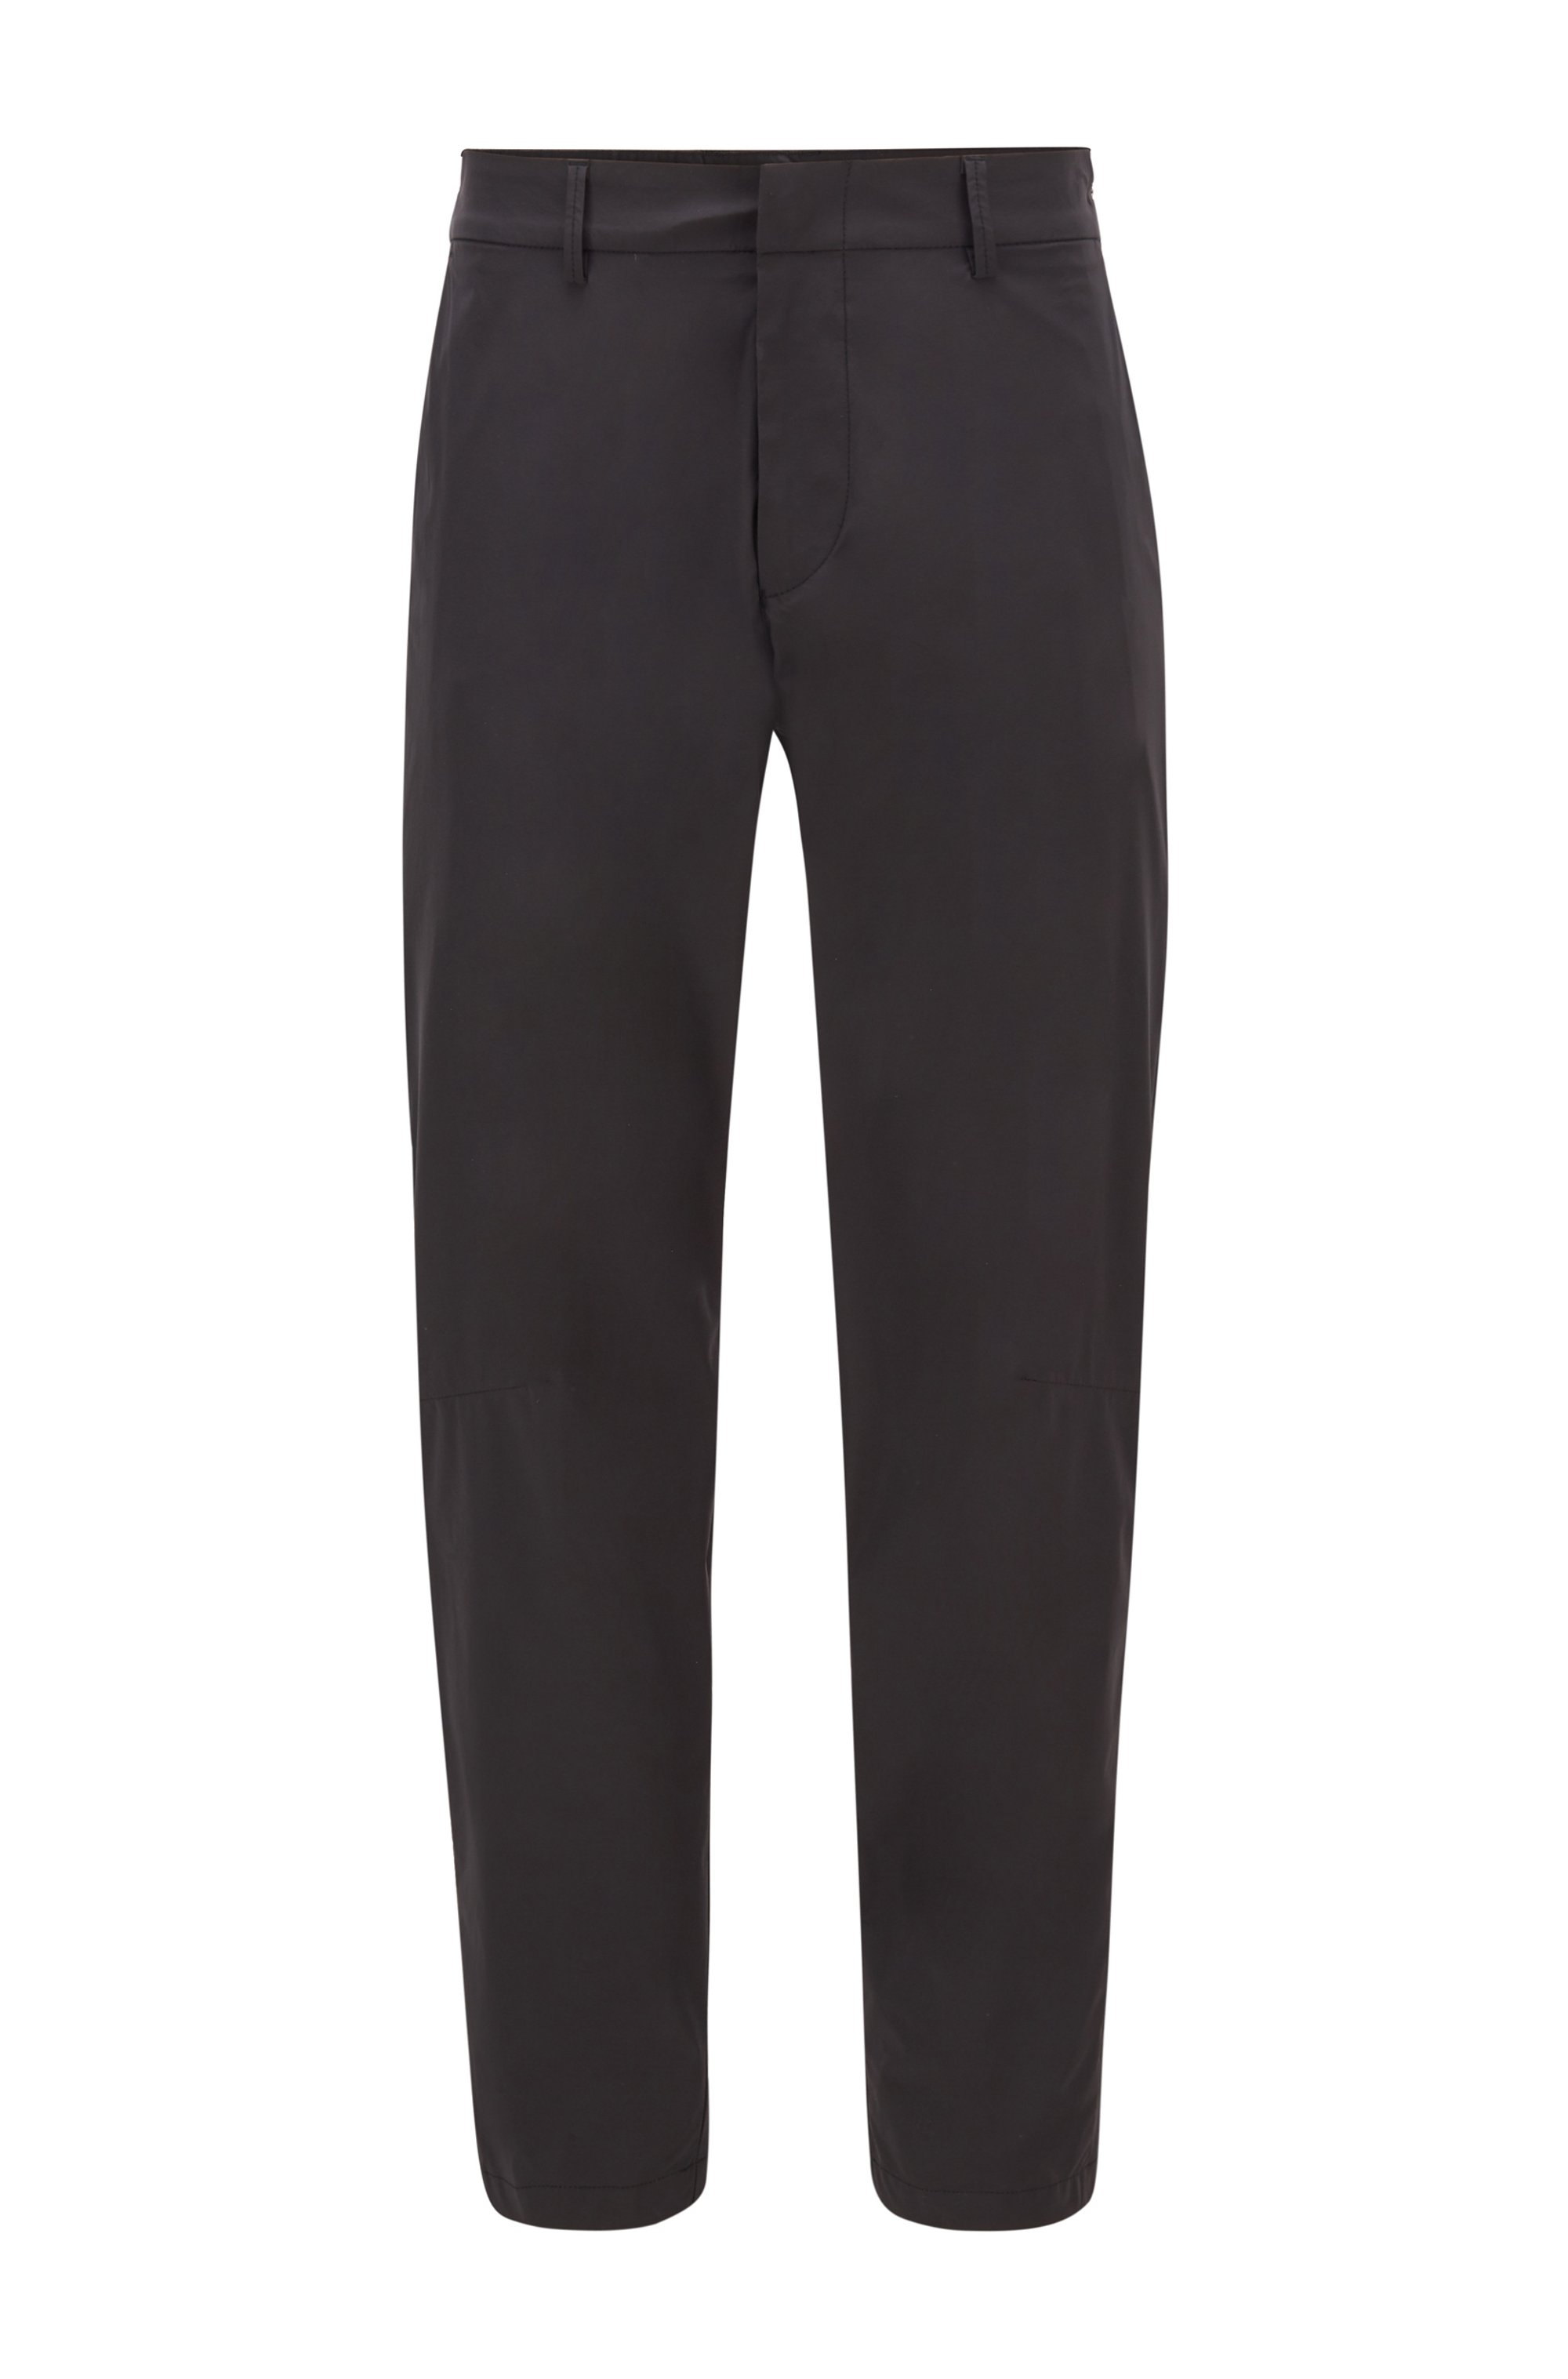 Pantalon Slim Fit en tissu stretch déperlant, Noir